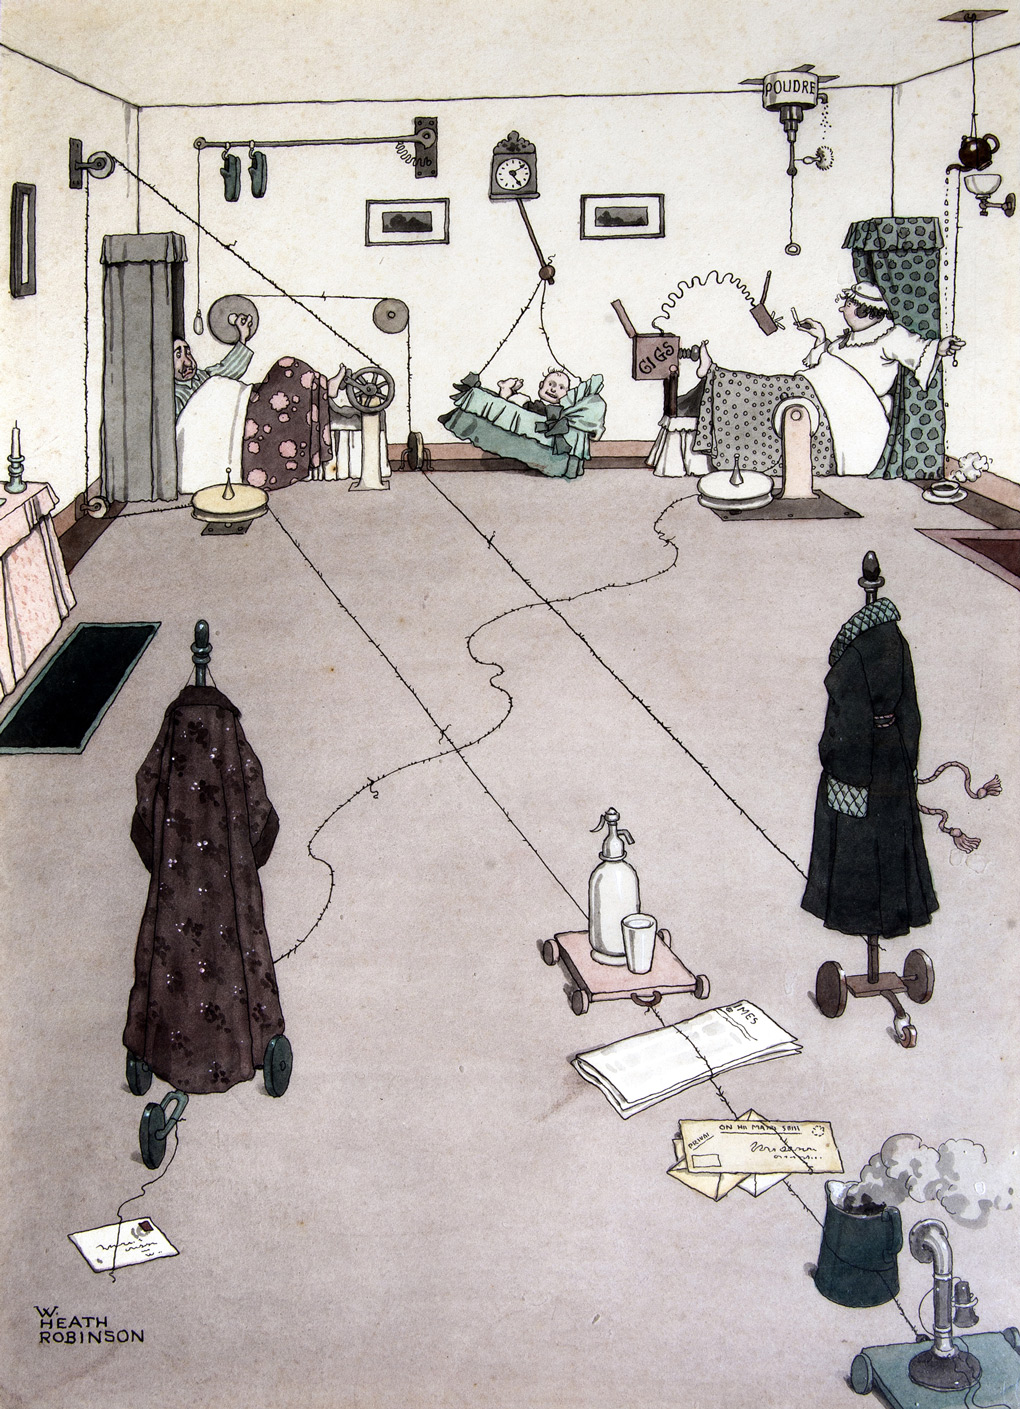 Absurdity and wonder: Heath Robinson at home | 1843